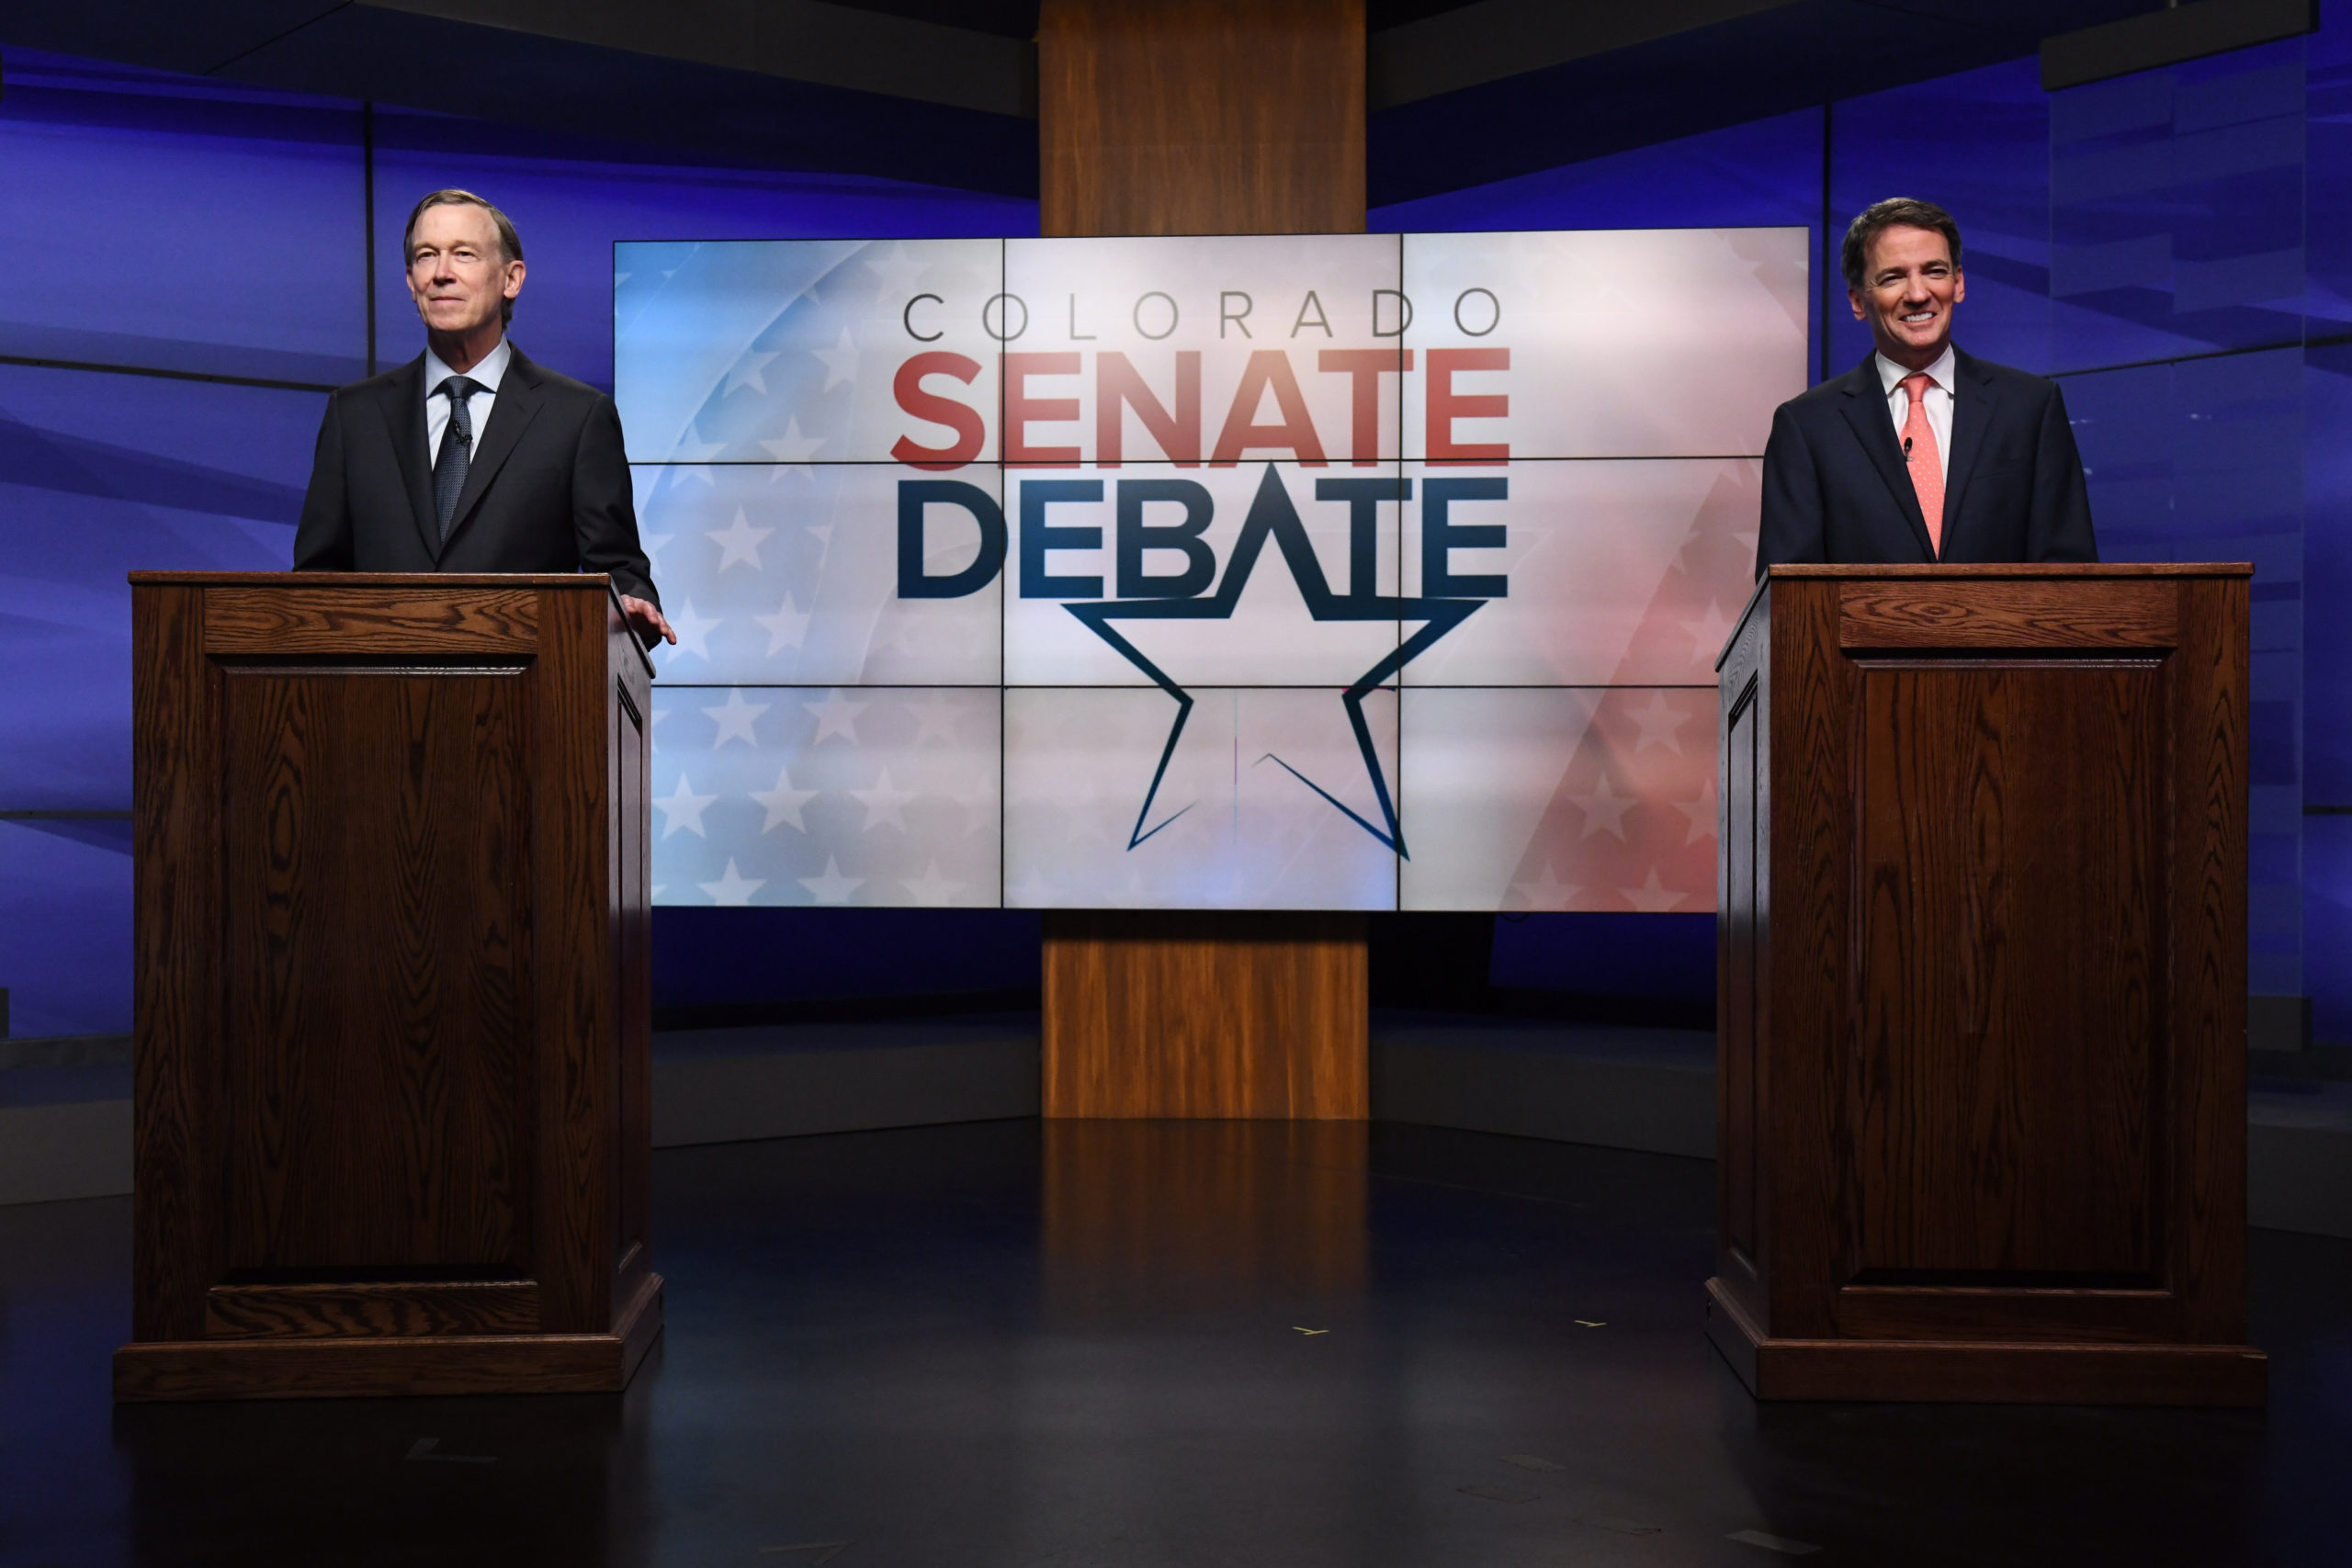 Former Colorado Gov. John Hickenlooper, left, and former state House speaker Andrew Romanoff get set for a debate in the studio of Denver7 in Denver on Tuesday, June 16, 2020. The debate, held ahead of the Democratic primary, was sponsored by The Denver Post, Colorado Public Radio News, Denver7 and the University of Denver's Center on American Politics. The winner of the June 30 primary will go on to face incumbent Republican Colorado Sen. Cory Gardner in November's general election.